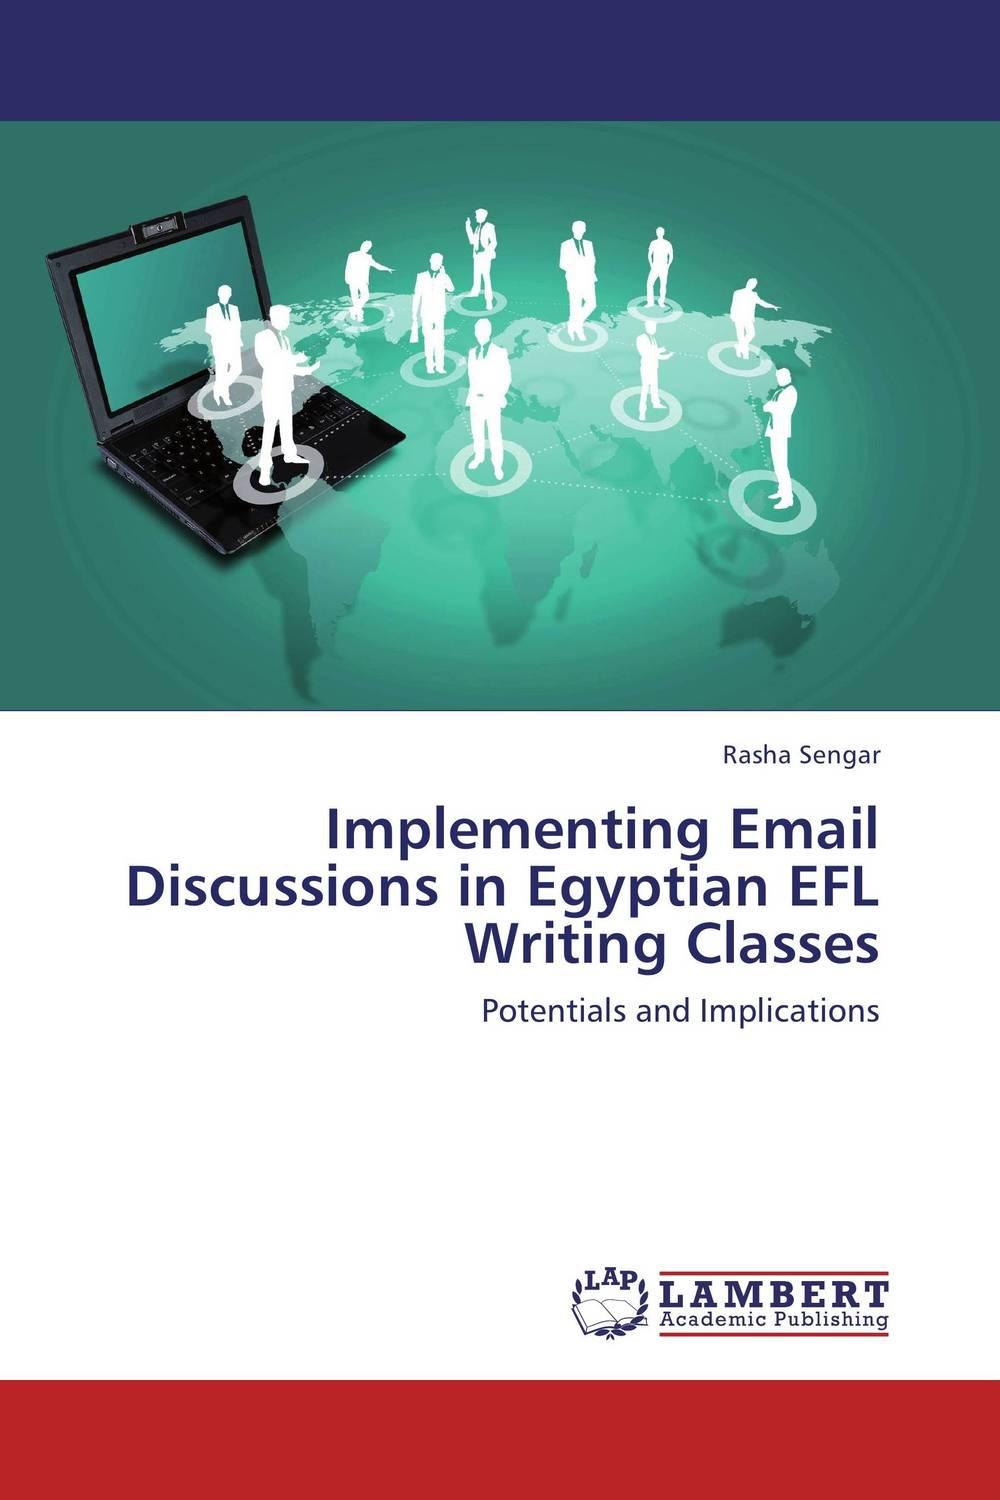 Implementing Email Discussions in Egyptian EFL Writing Classes kumar rakesh subhangi dutta and kumara shama handbook on implementing gender recognition